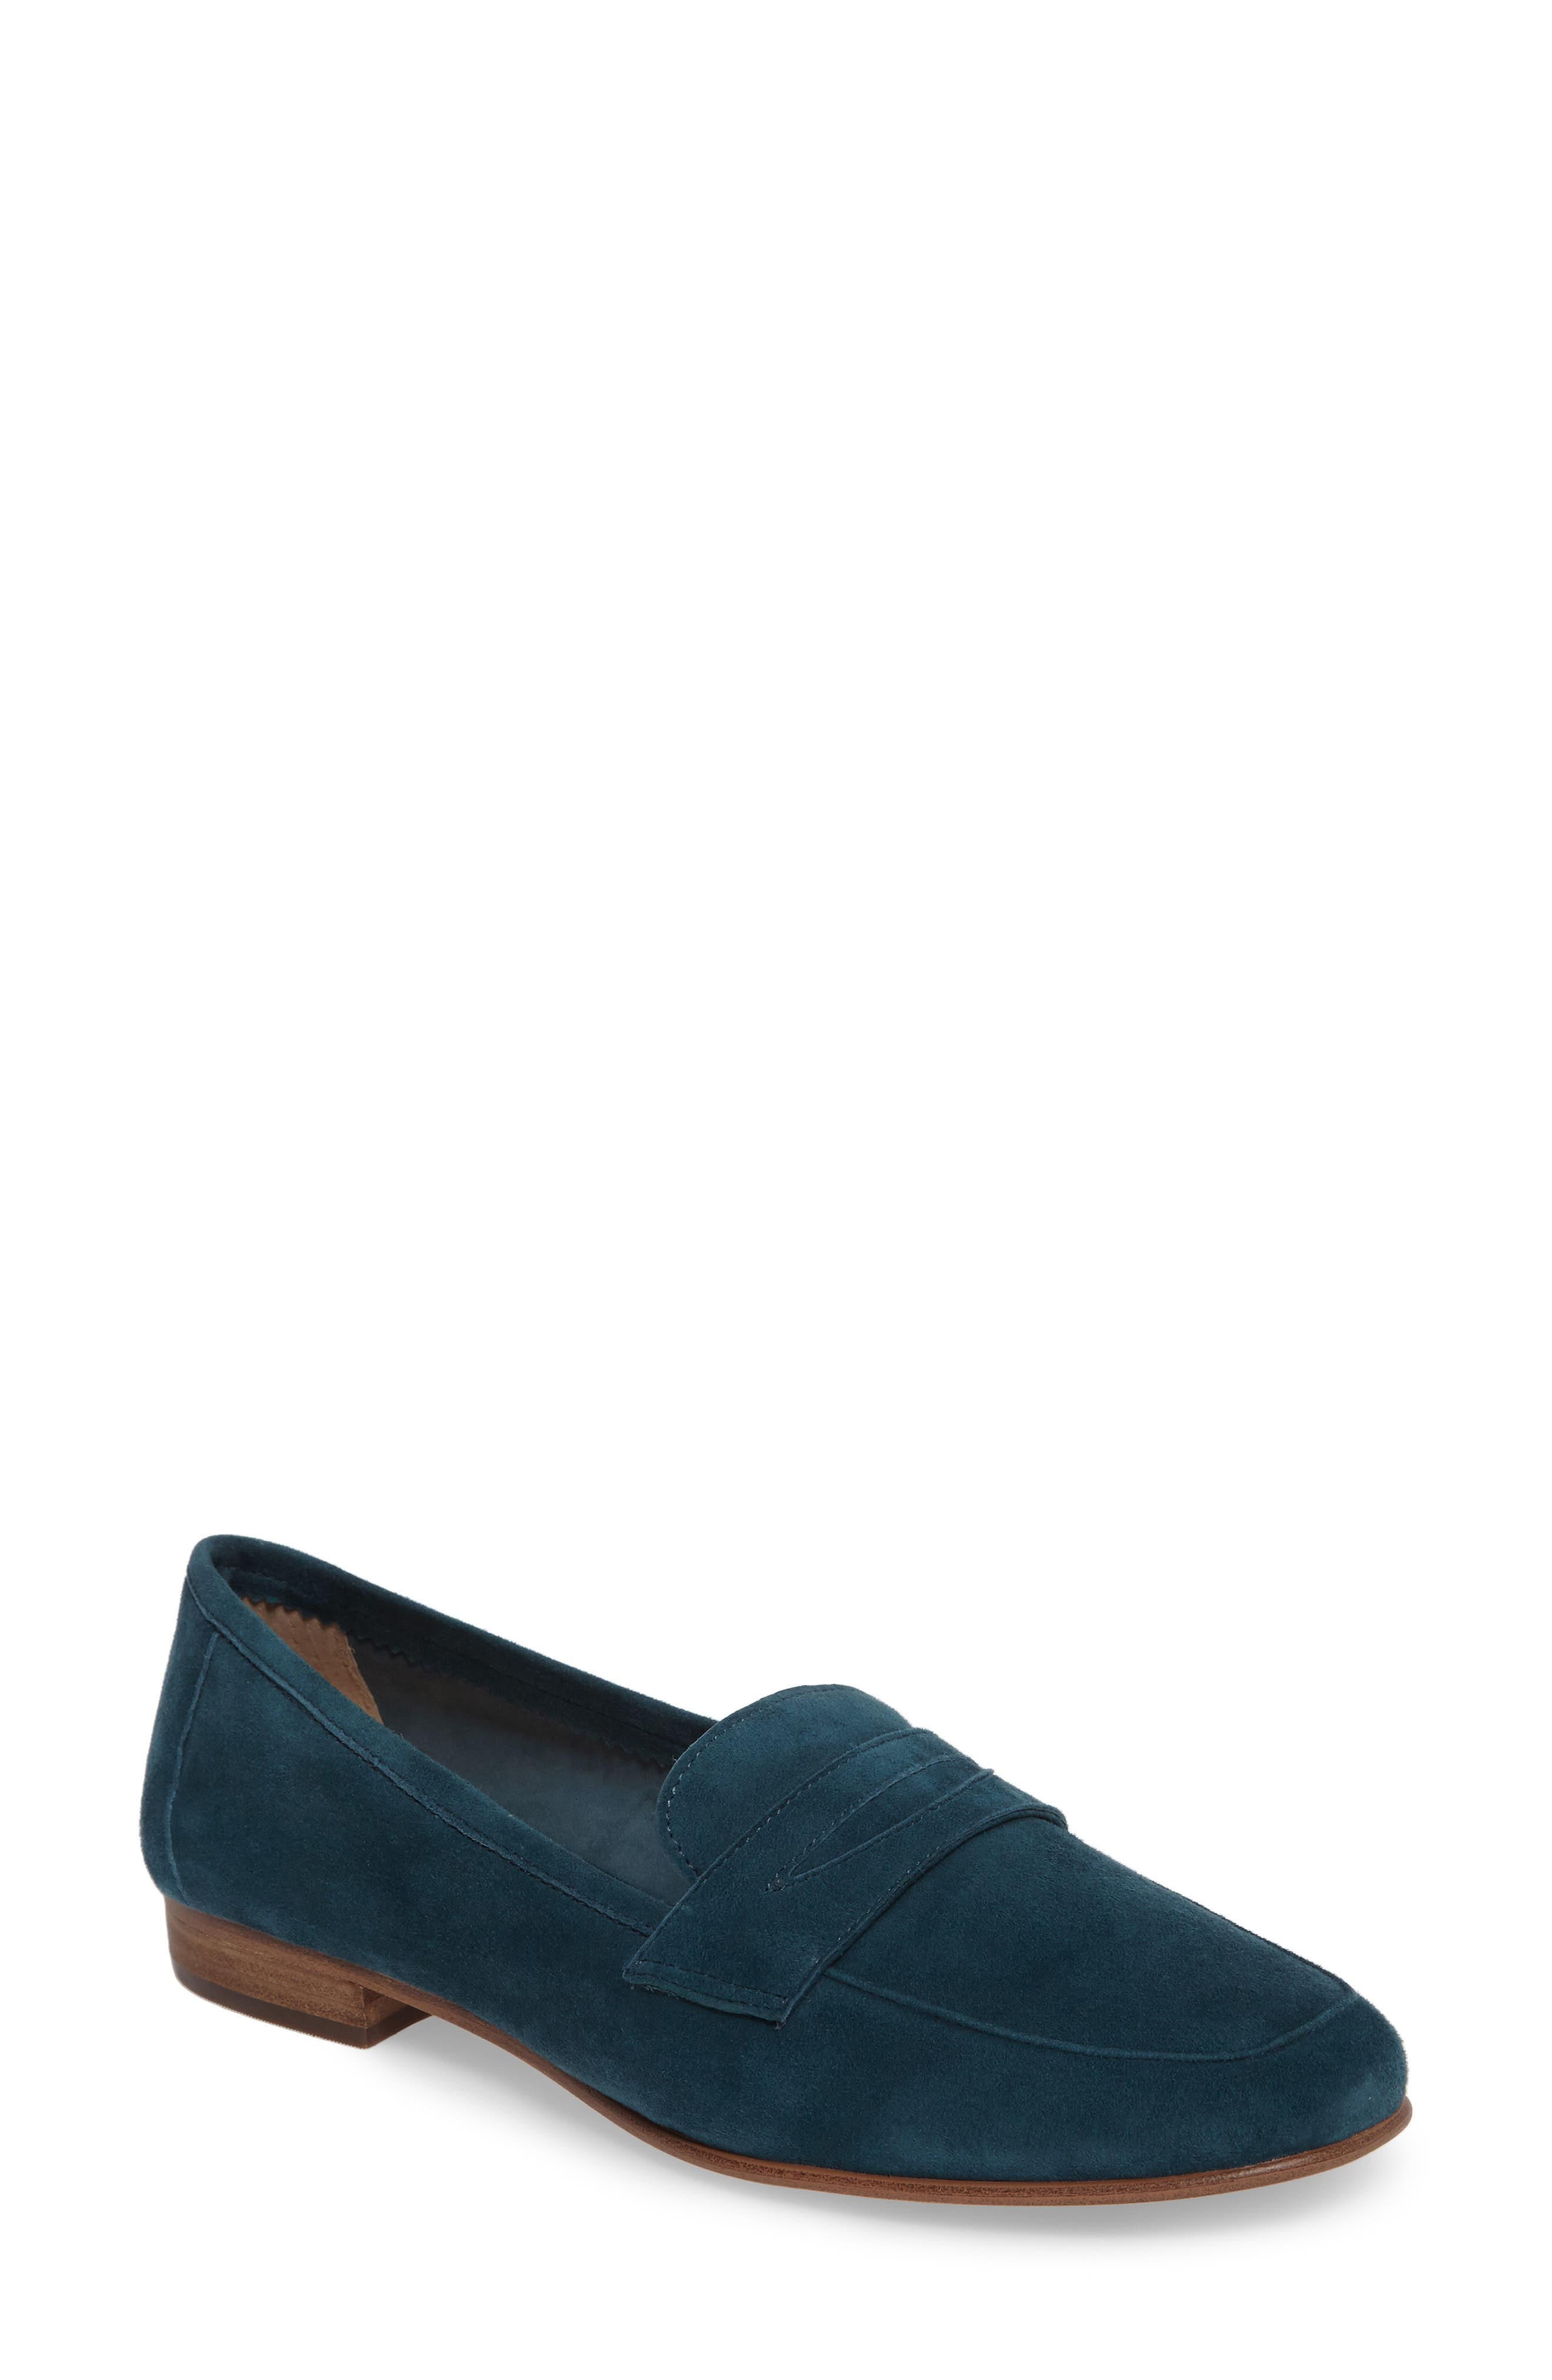 Elroy Penny Loafer,                             Main thumbnail 1, color,                             Biscay Bay Suede